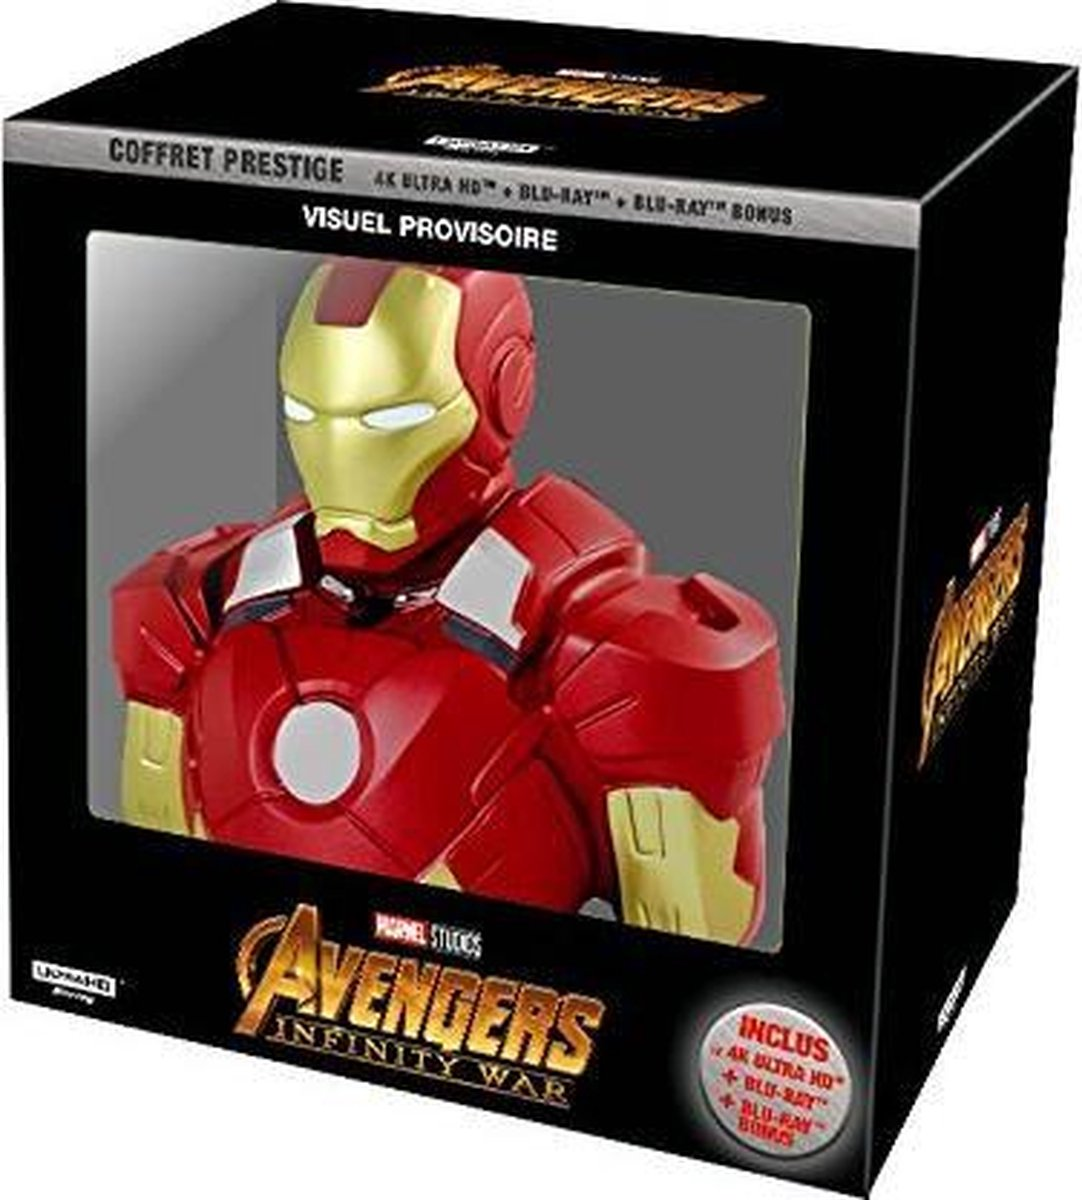 Avengers Infinity War 4K UHD + Blu-ray Collectors Edition (Import)-